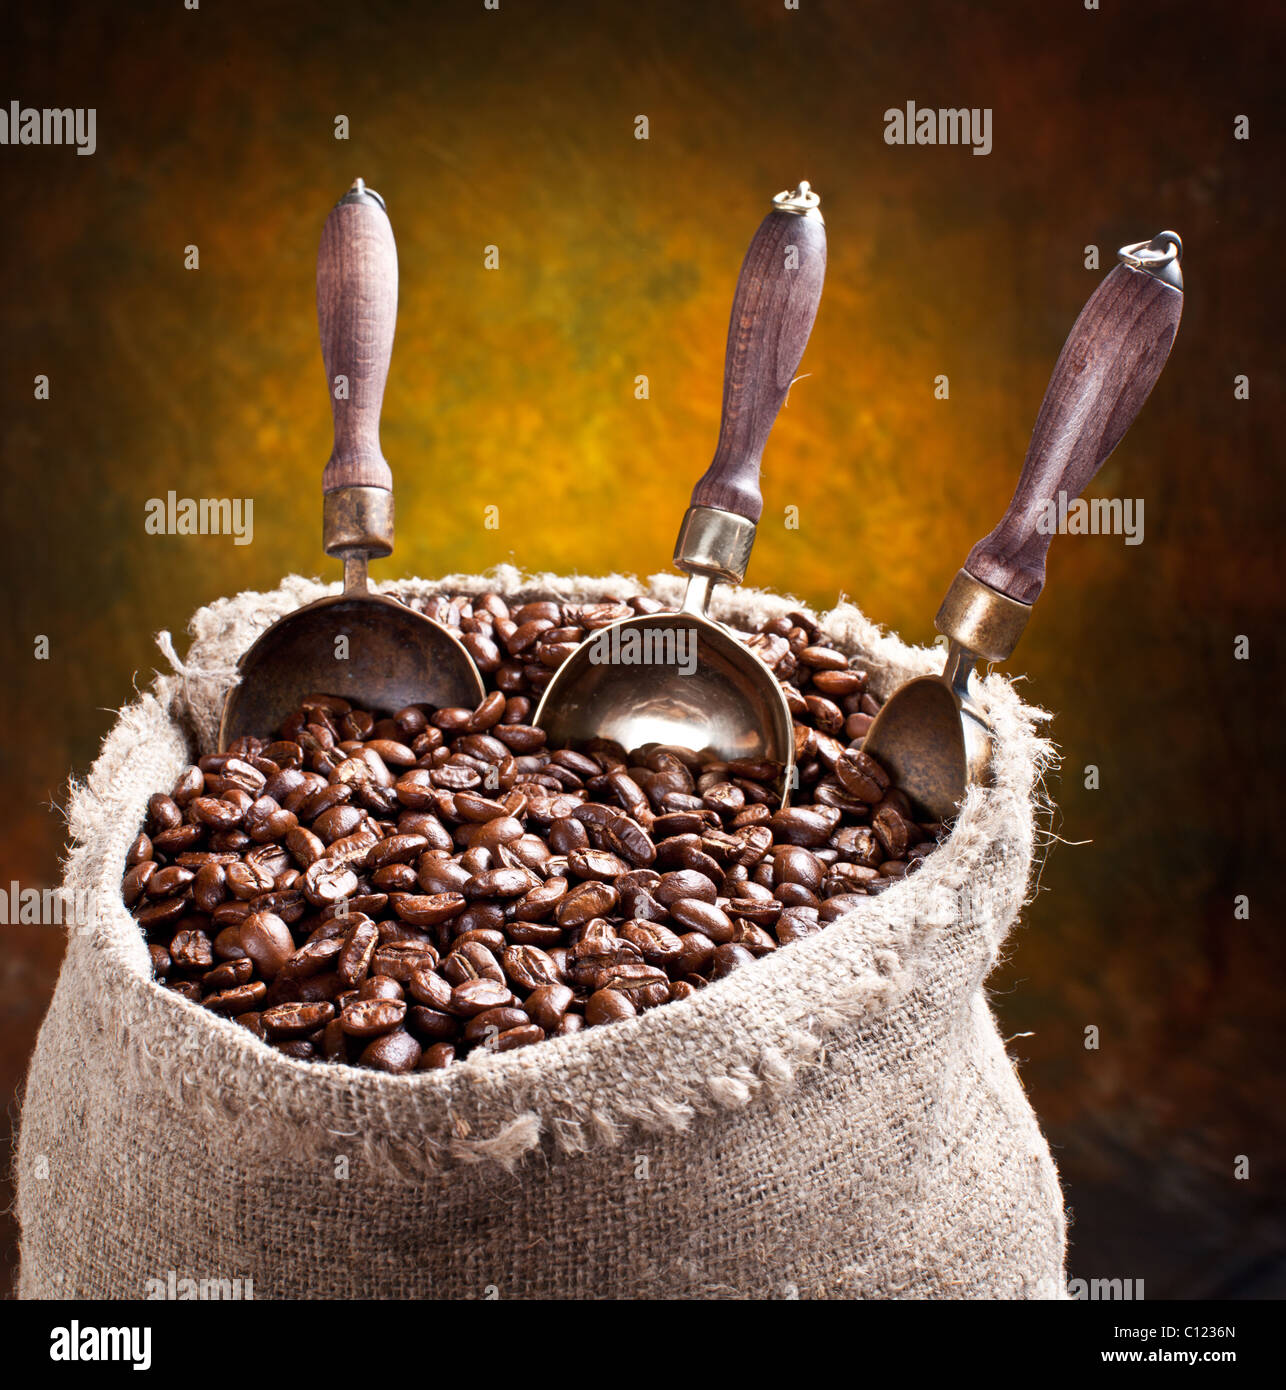 Sack of coffee beans and scoop. On a dark background. Stock Photo